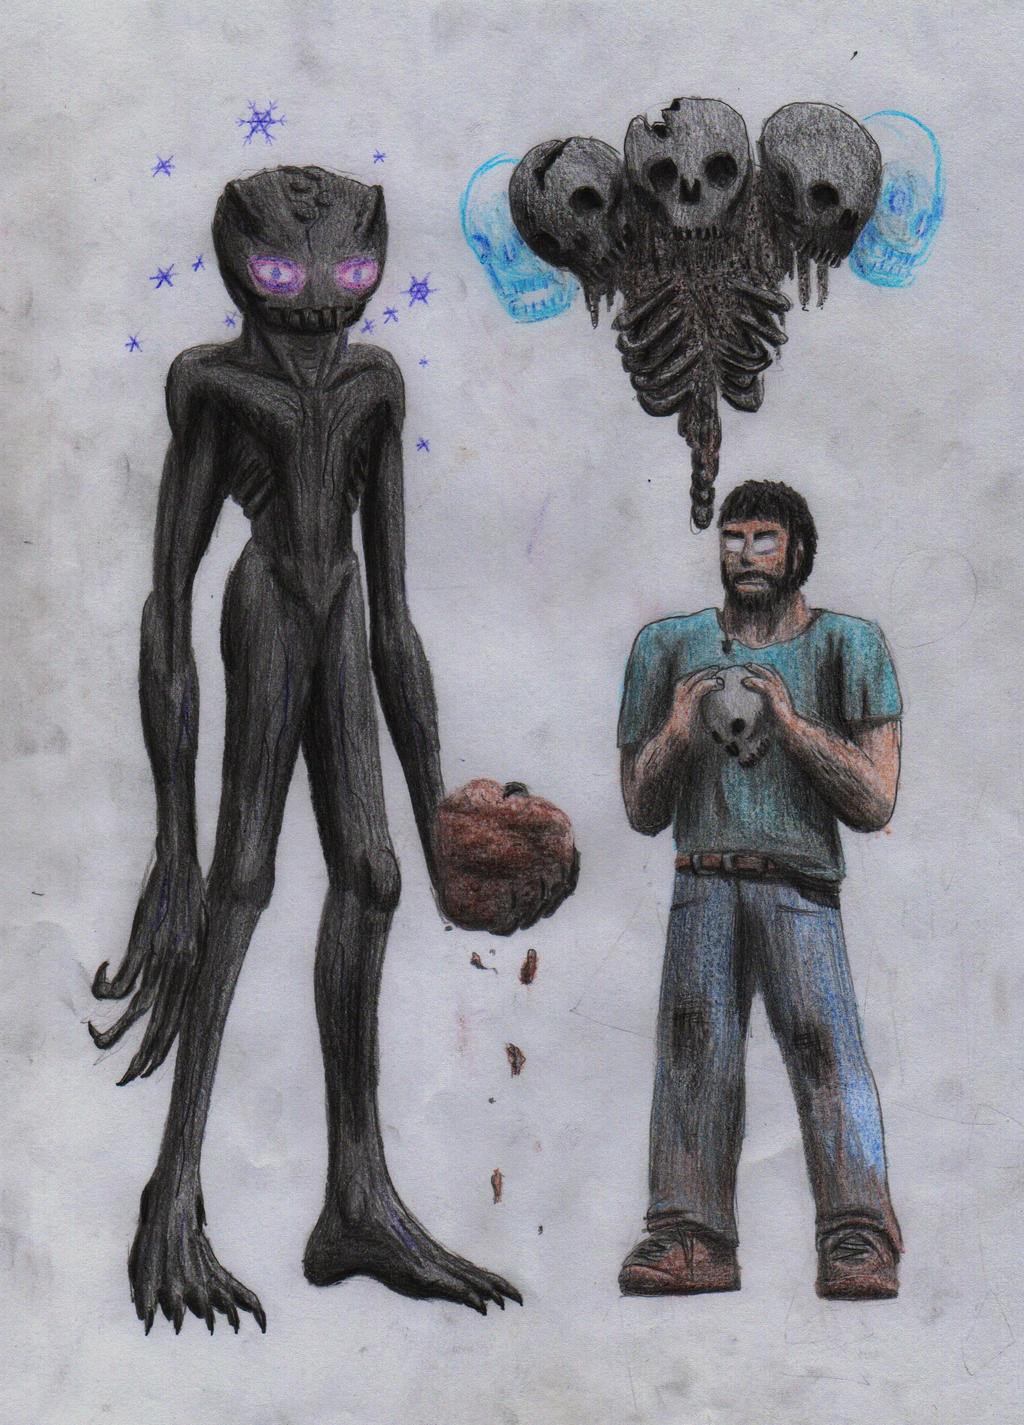 Realistic Minecraft Villains By Codylabs On Deviantart